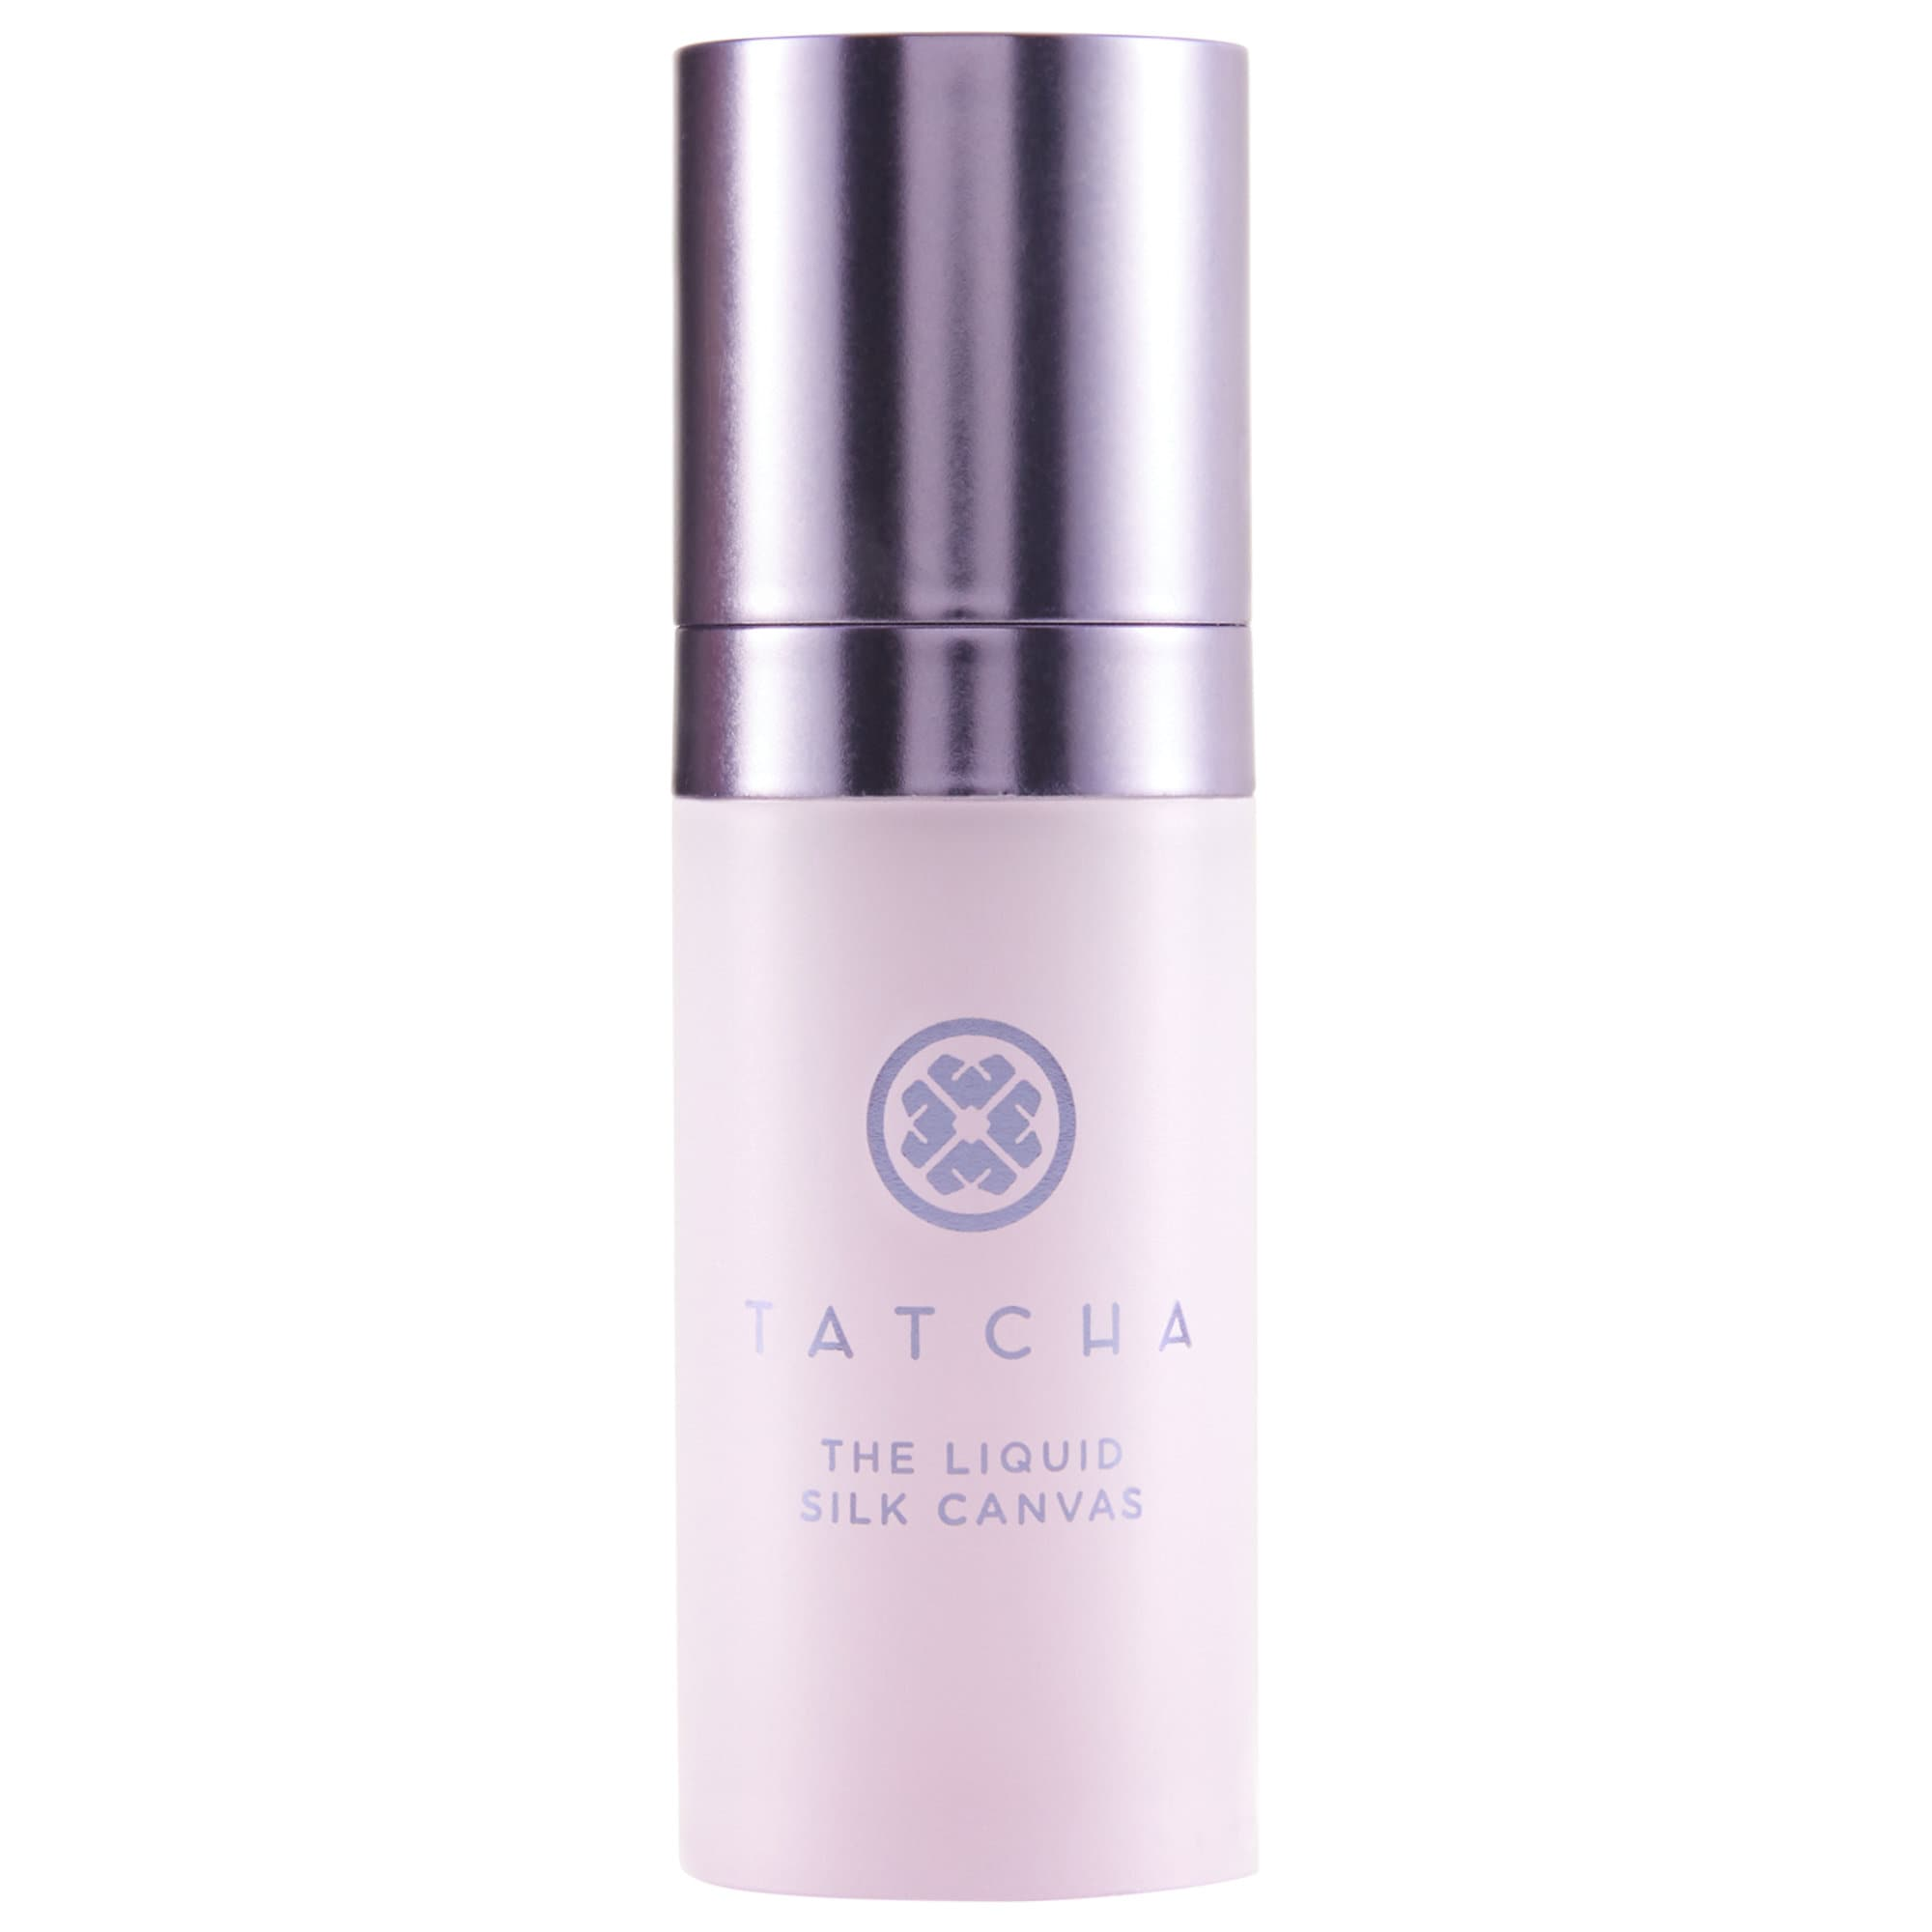 Tatcha - The Liquid Silk Canvas: Featherweight Protective Primer